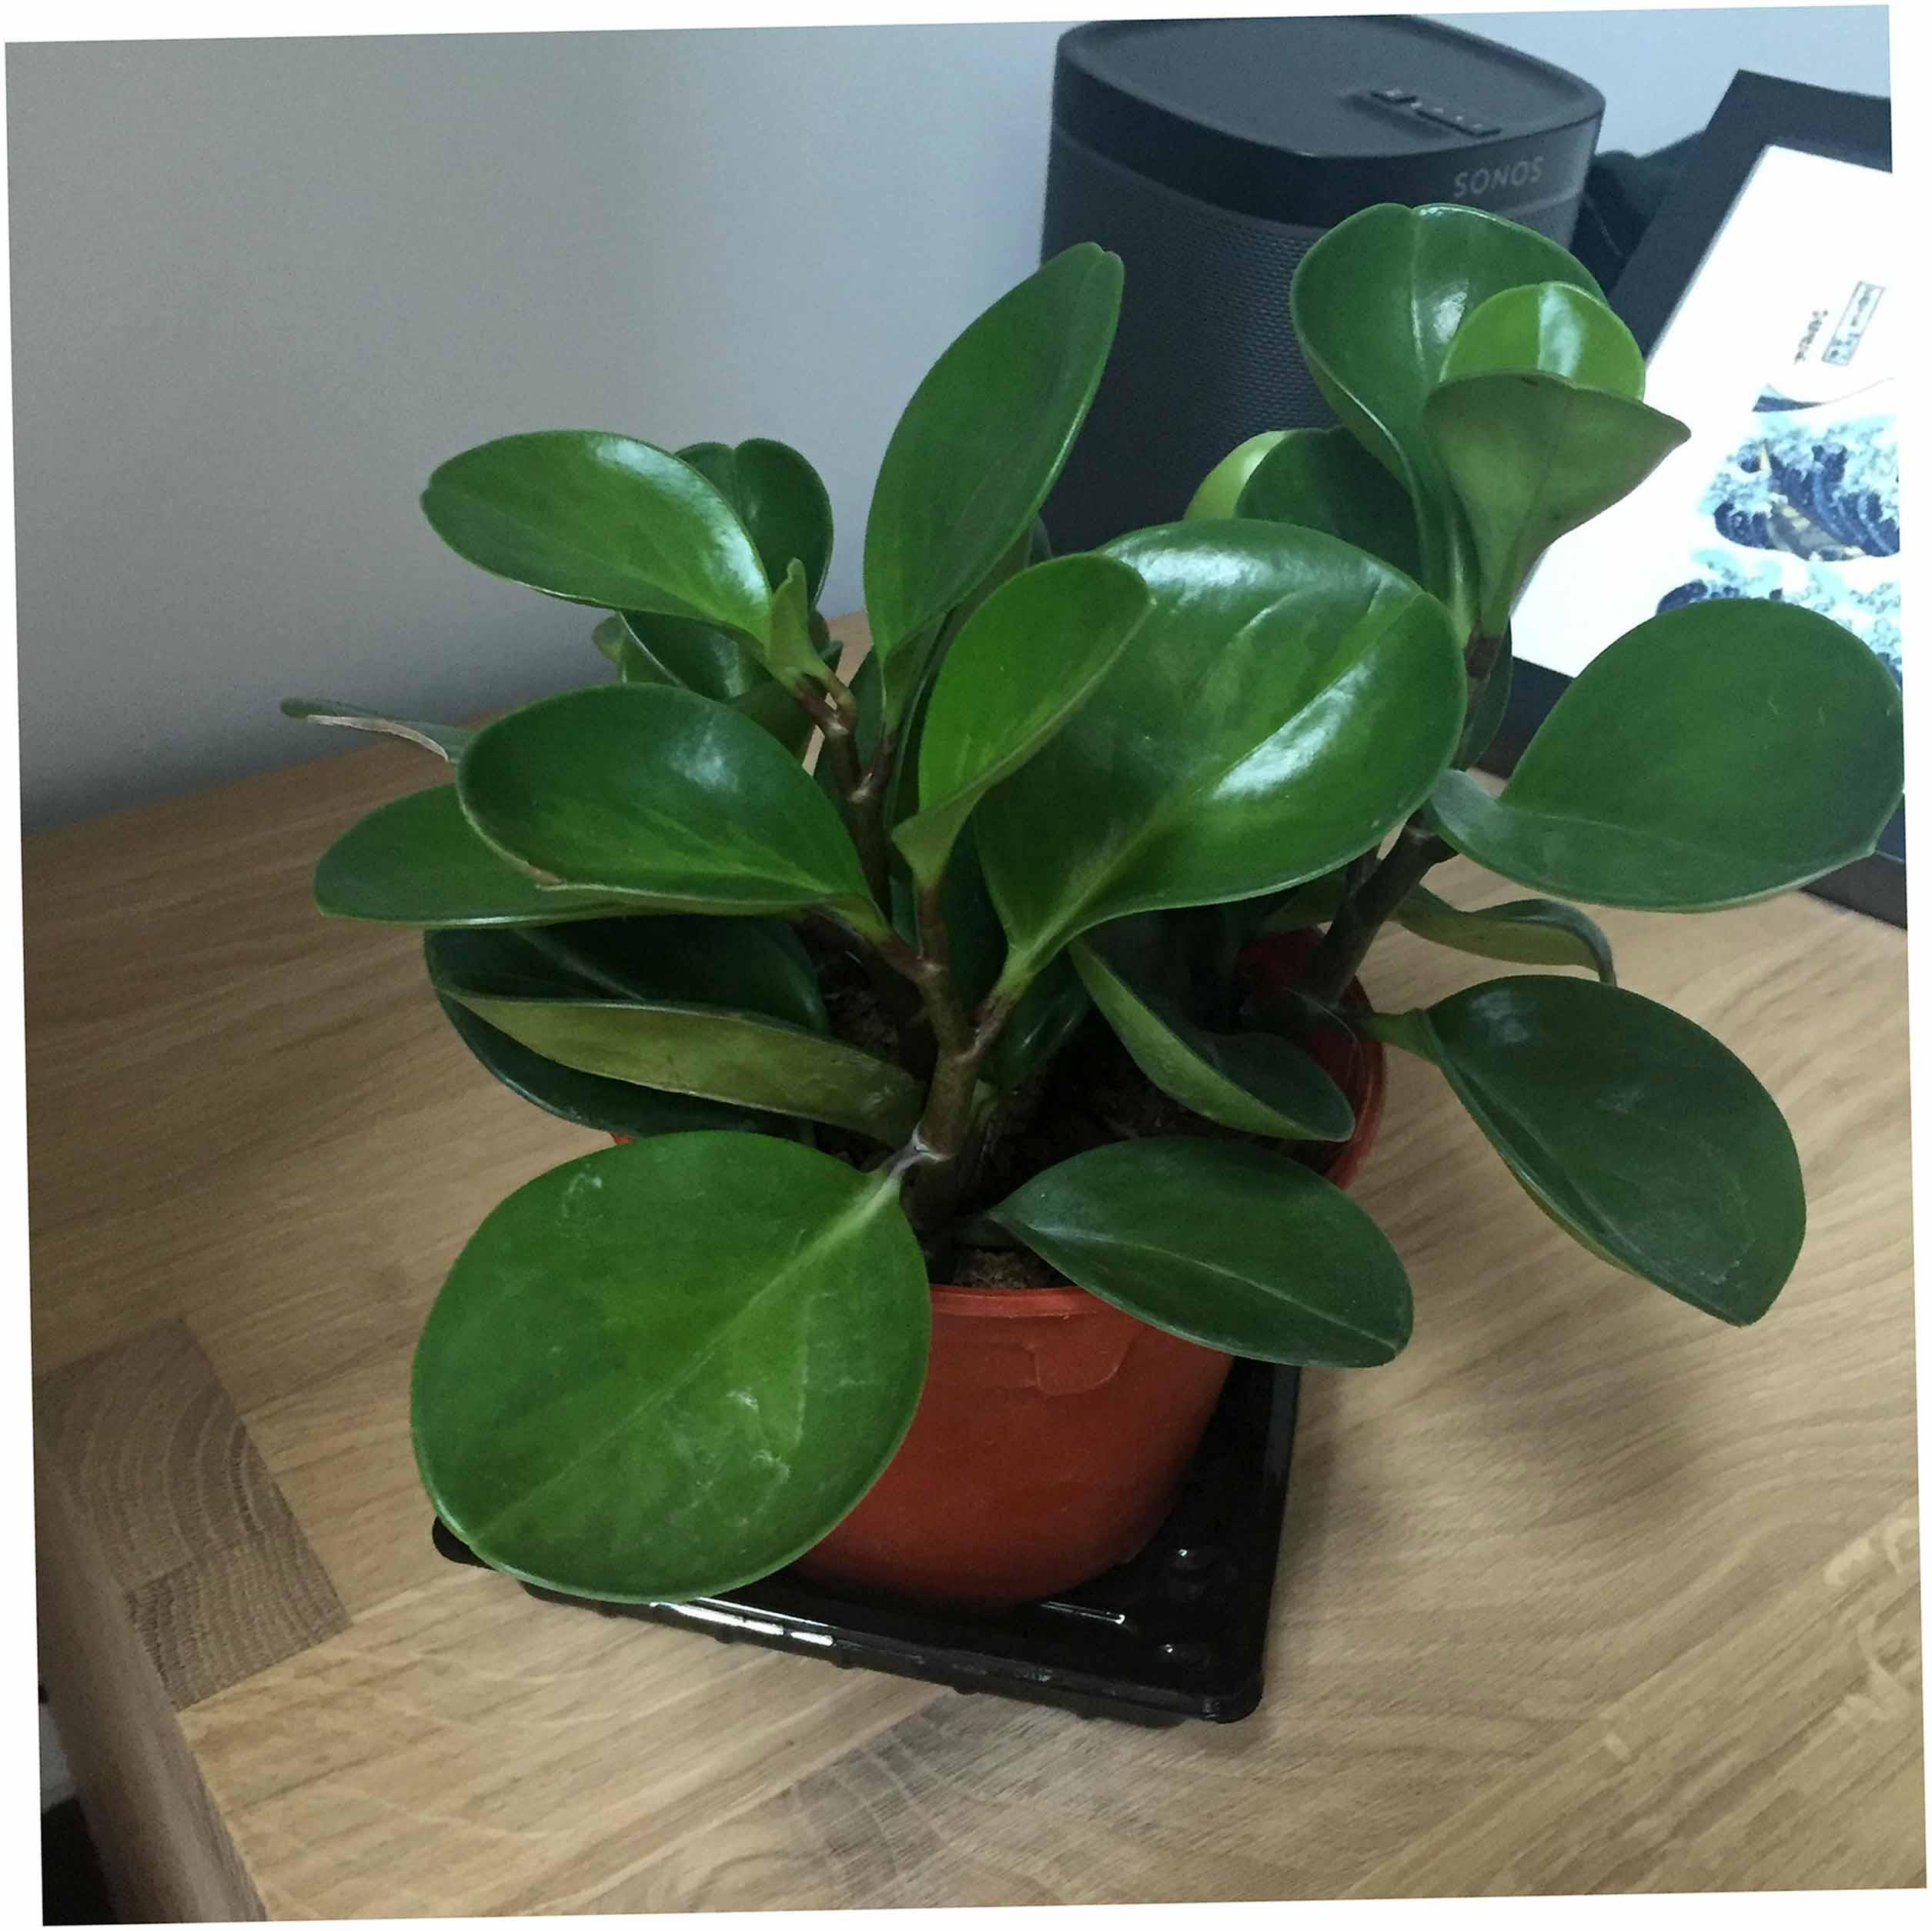 Gallant Sale Baby Rubber Plant Pruning Rubber Plant Home Dcor Plants That Will Add To Beauty Your Room Baby Rubber Plant houzz-03 Baby Rubber Plant